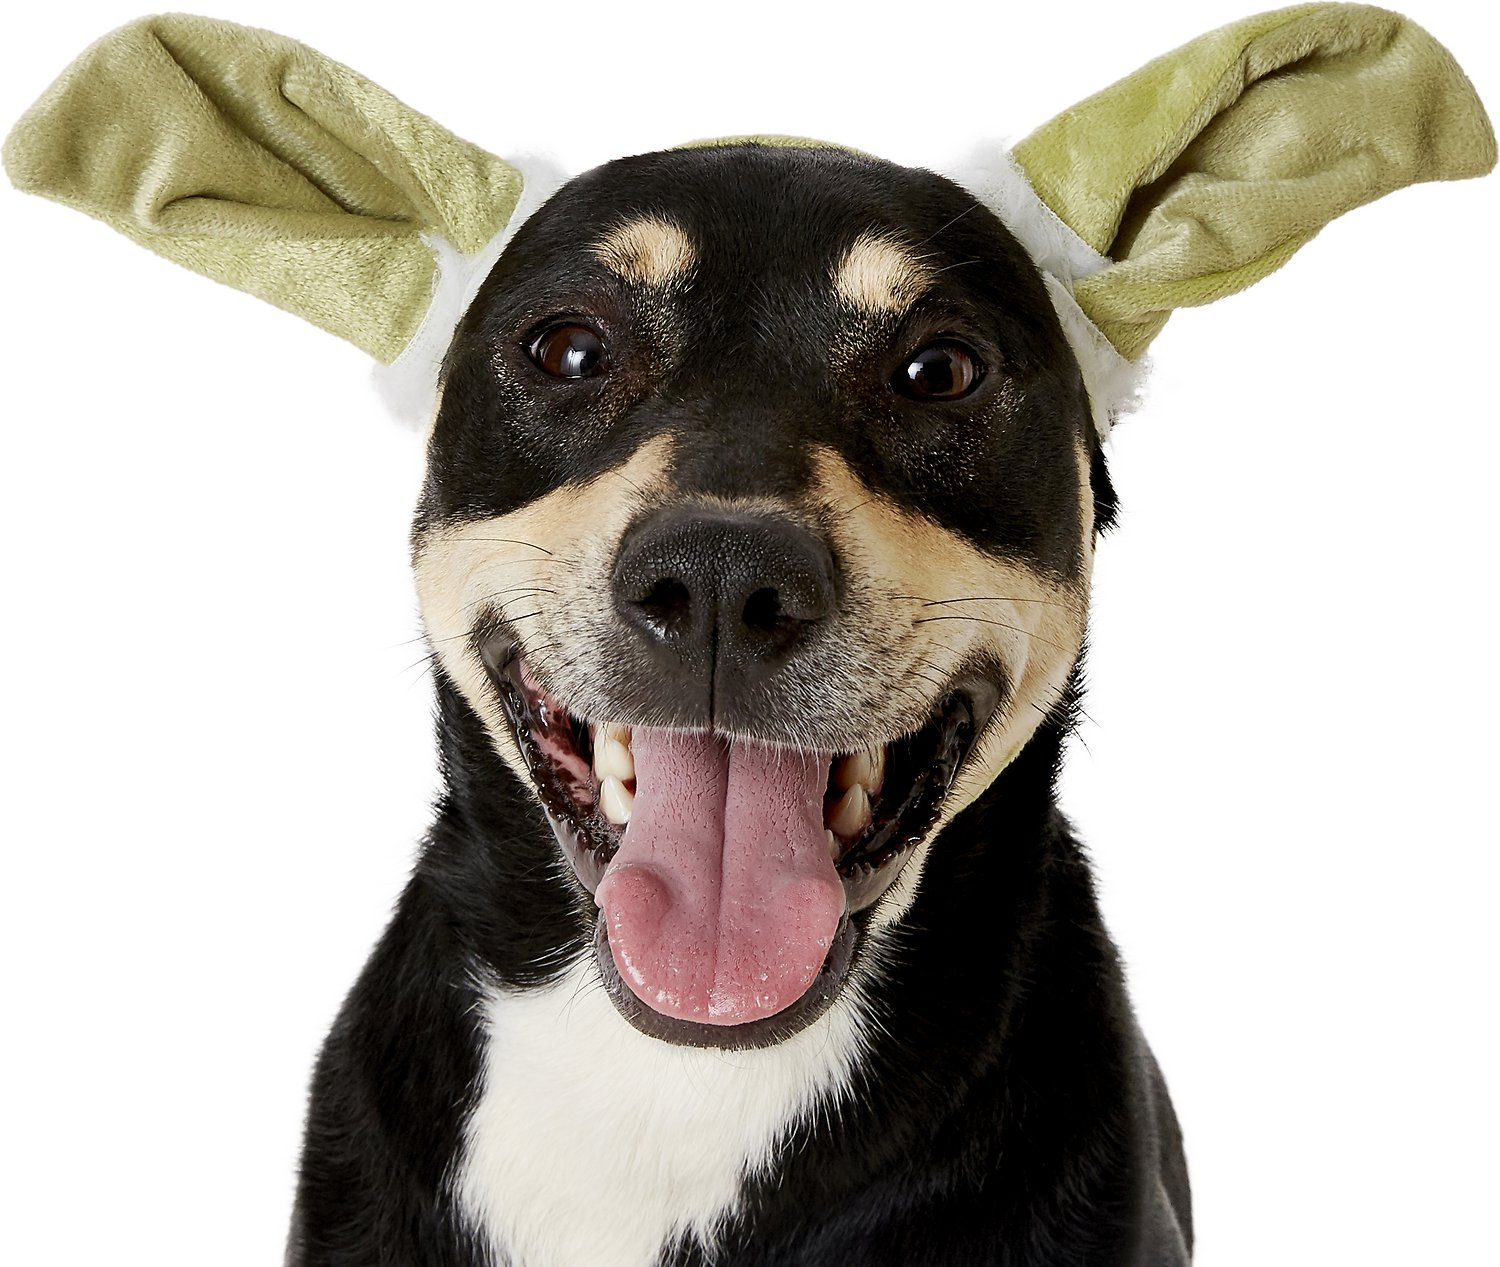 video  sc 1 st  Chewy.com & Rubieu0027s Costume Company Yoda Ears Dog Costume Medium/Large - Chewy.com